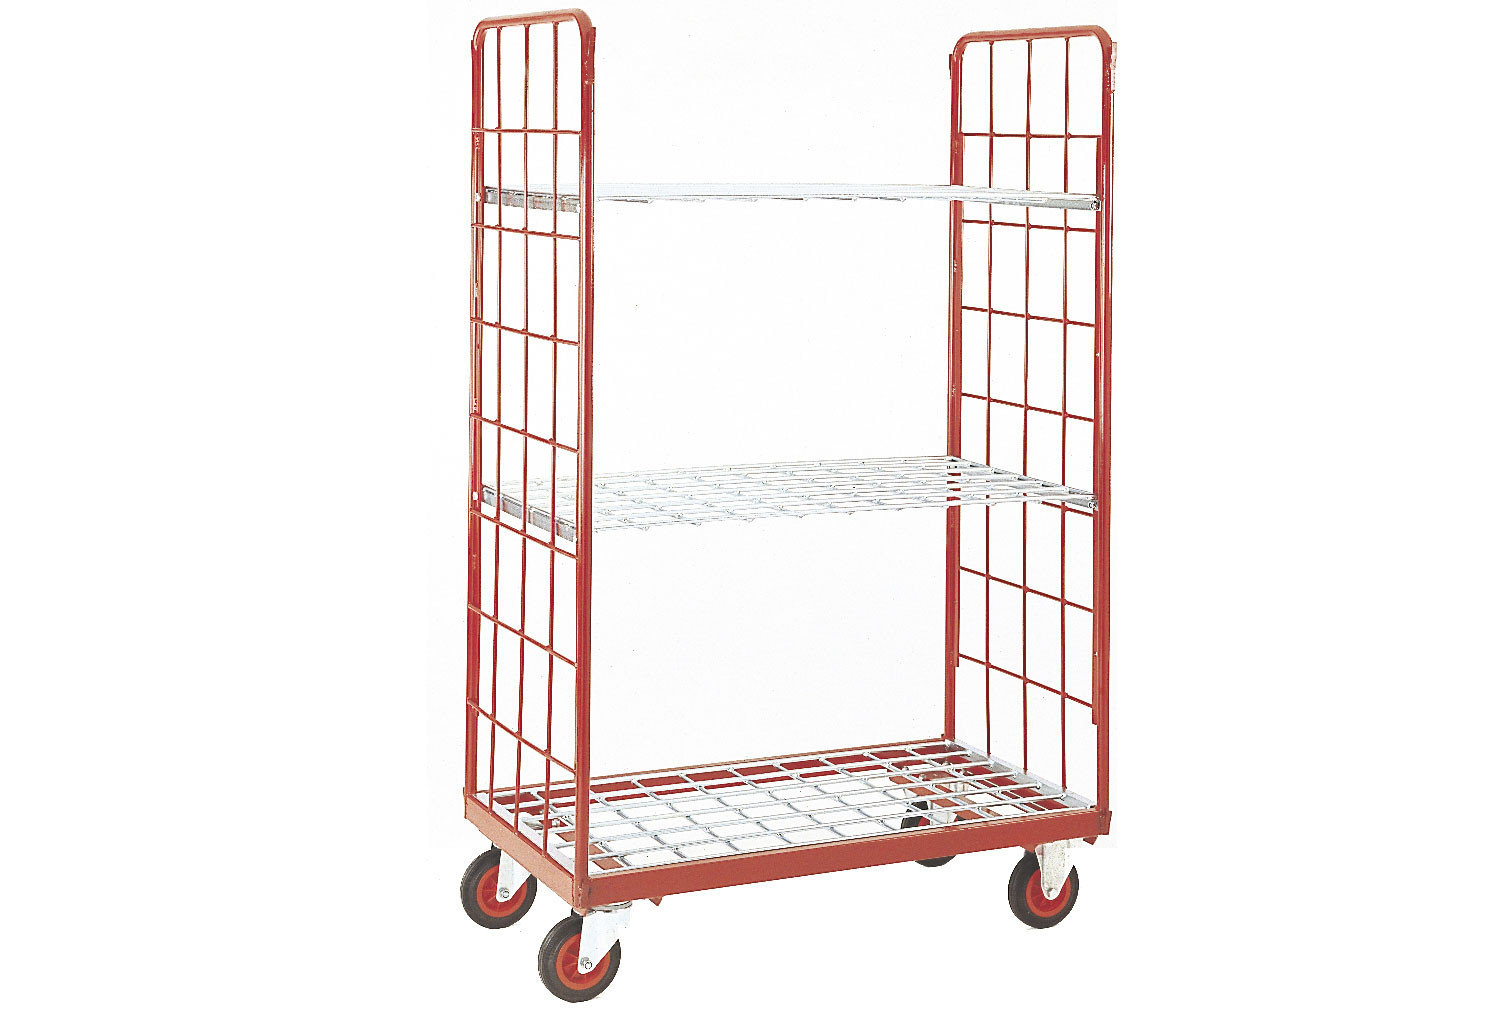 Narrow Aisle Distribution Truck With 2 Shelves